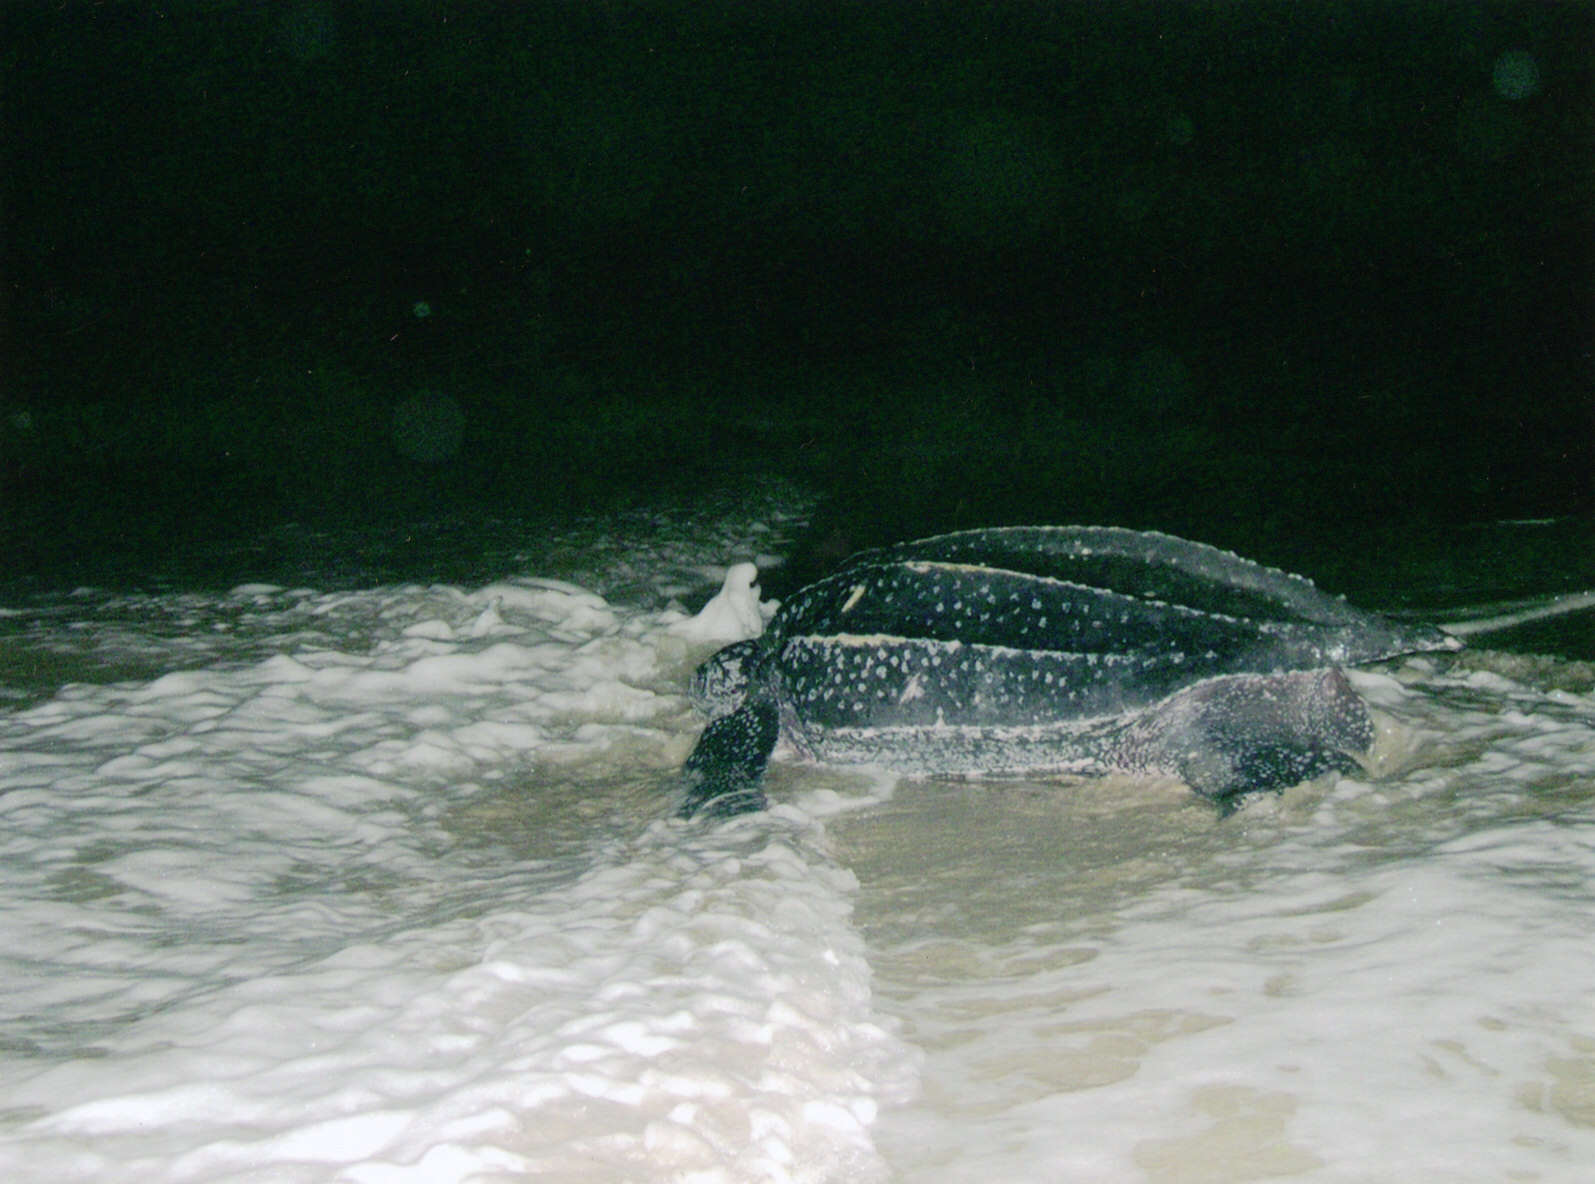 Leatherback returns to the ocean